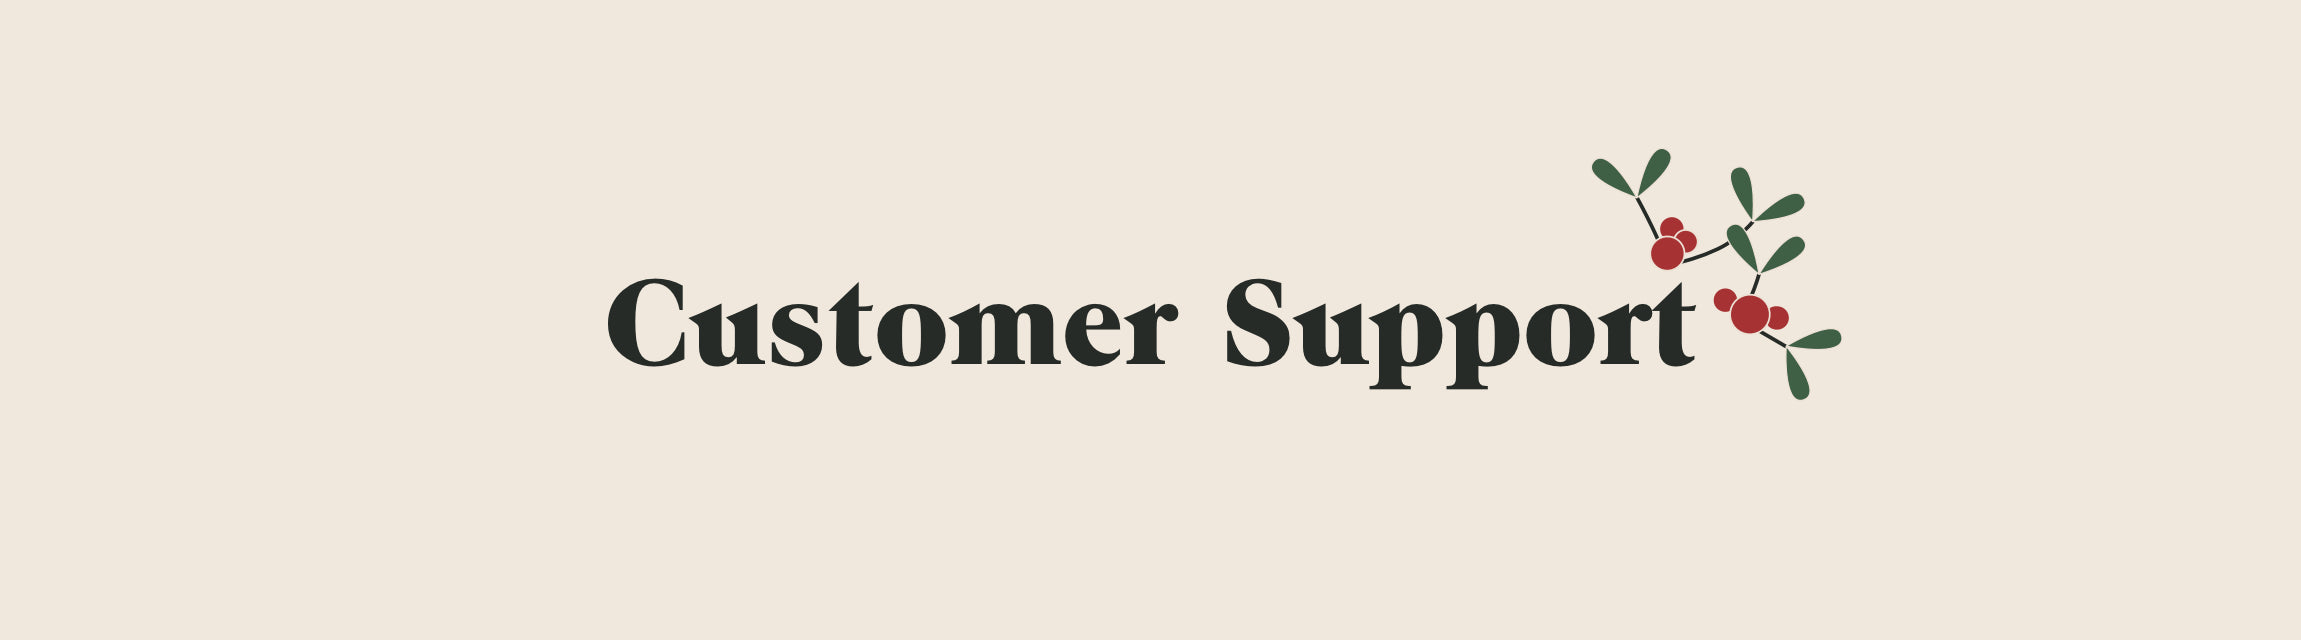 Customer Support title with mistletoe icon